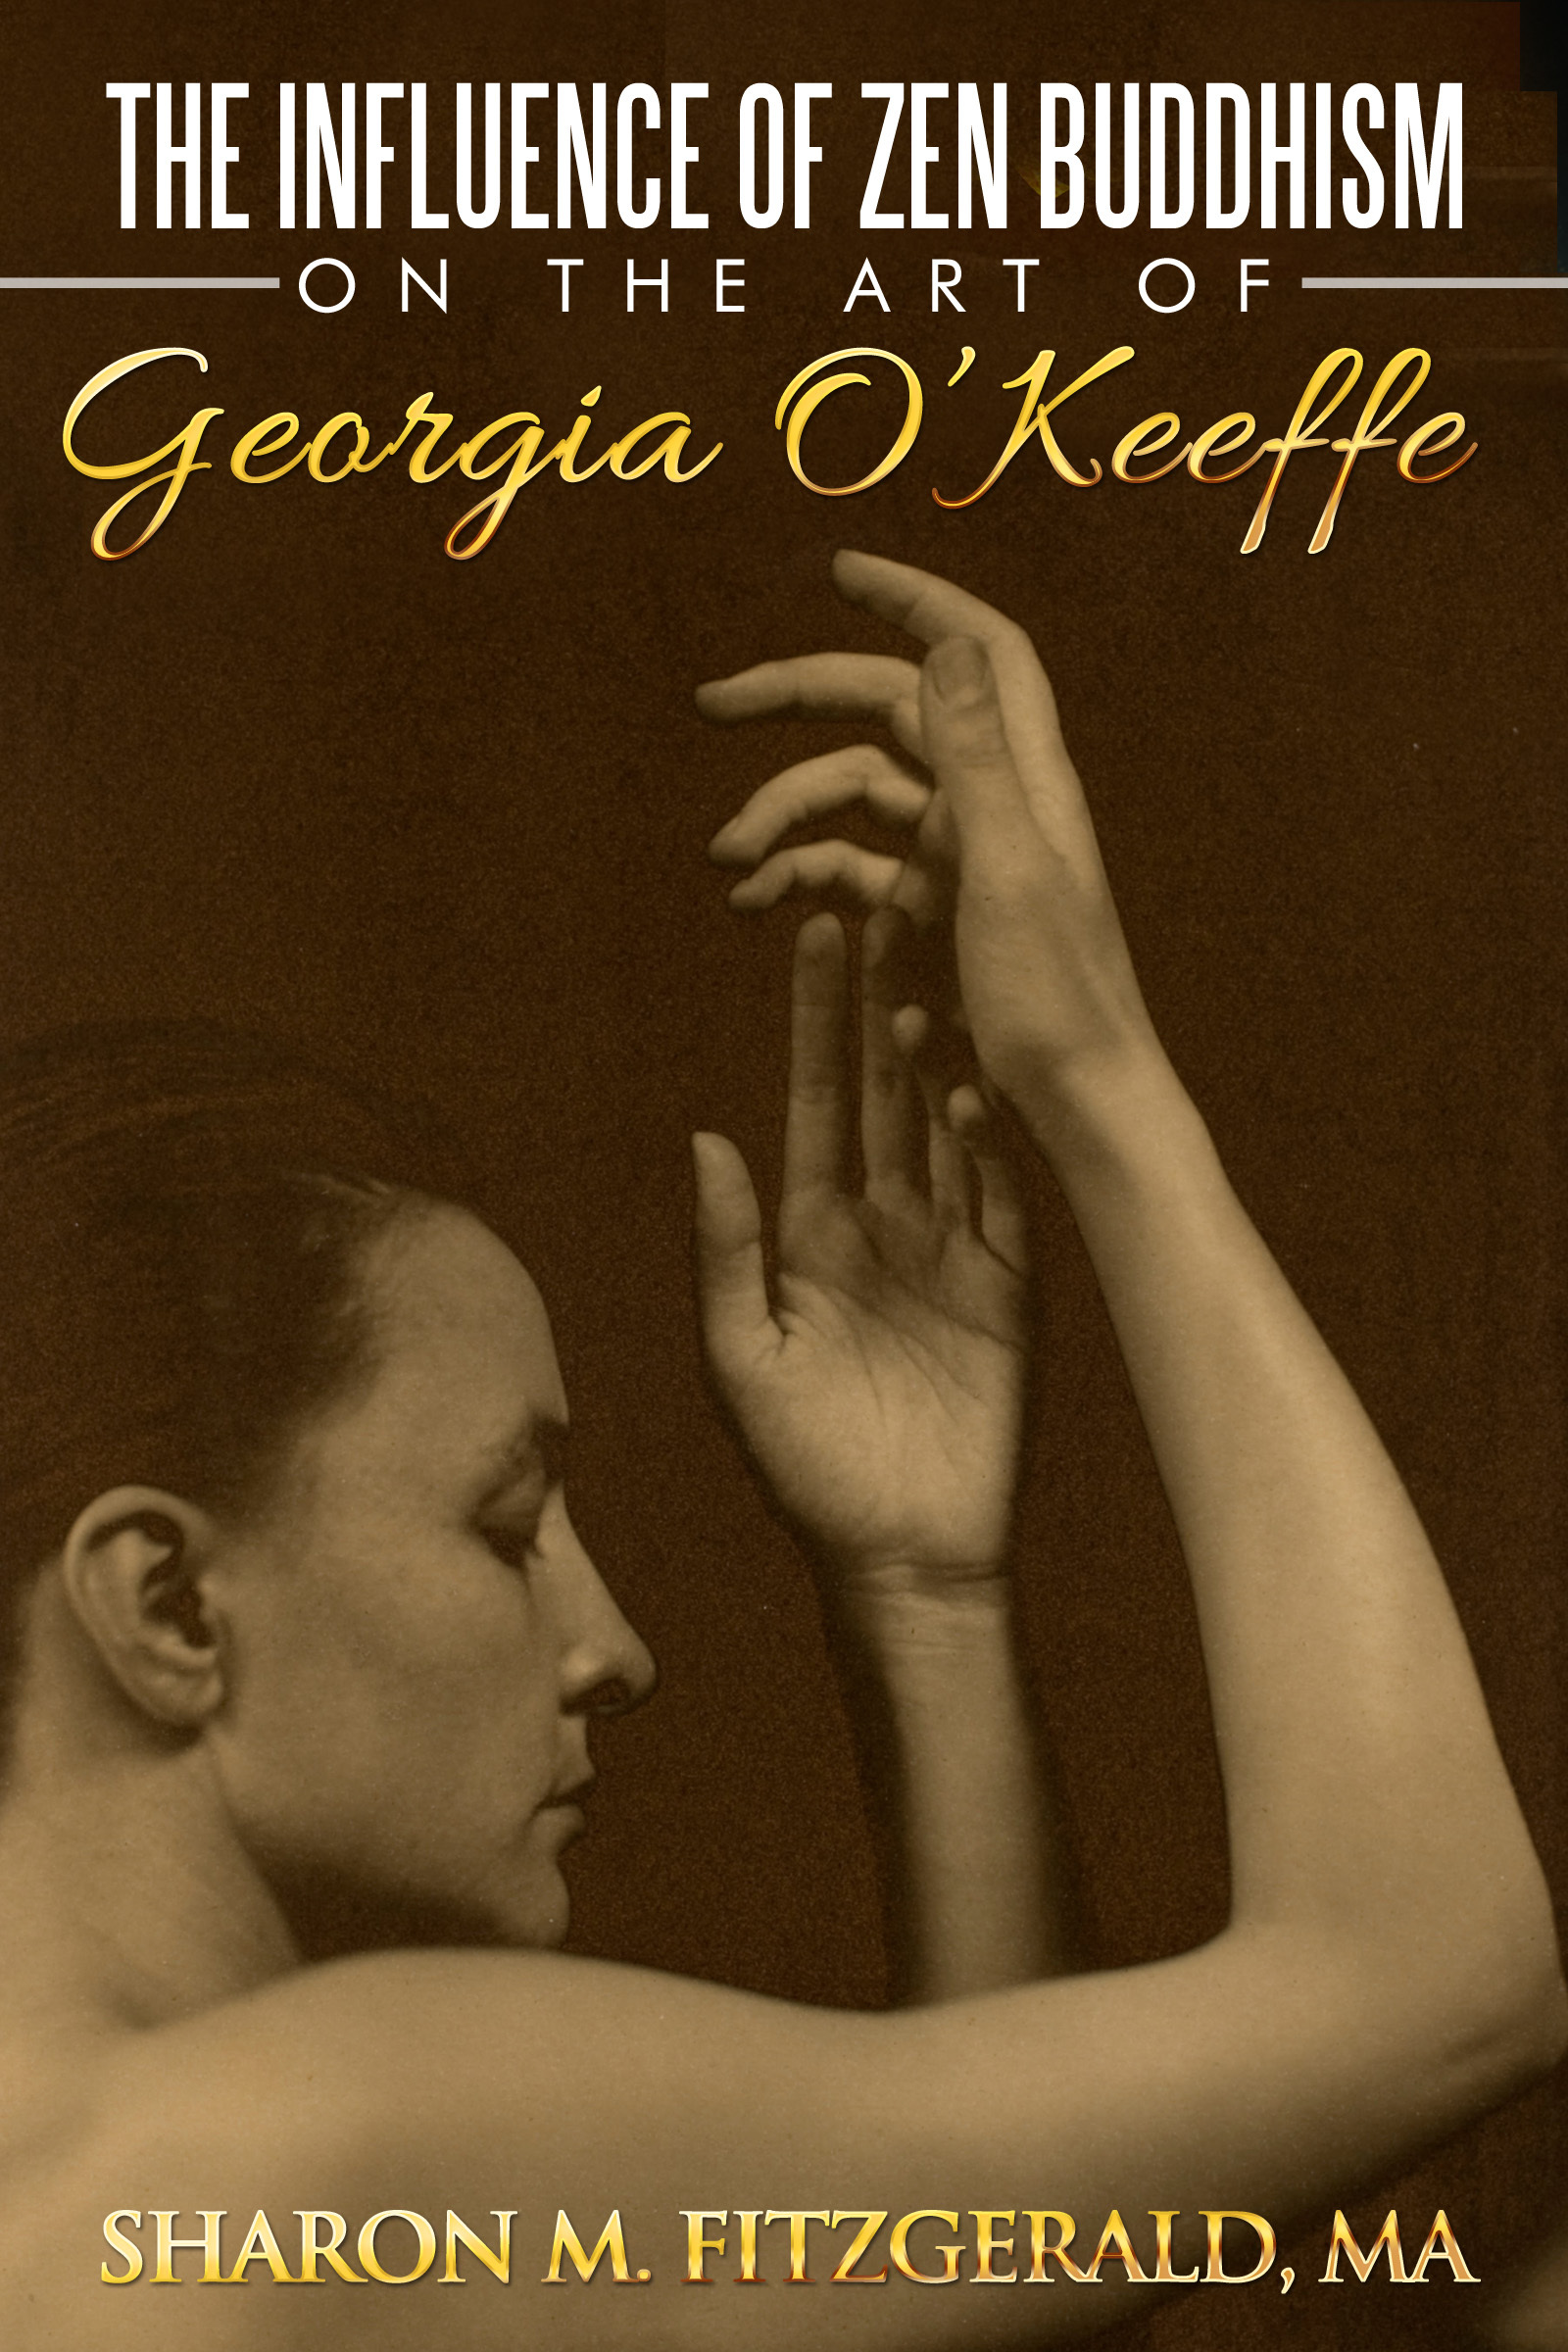 The Influence of Zen Buddhism on the Art of Georgia O'Keeffe